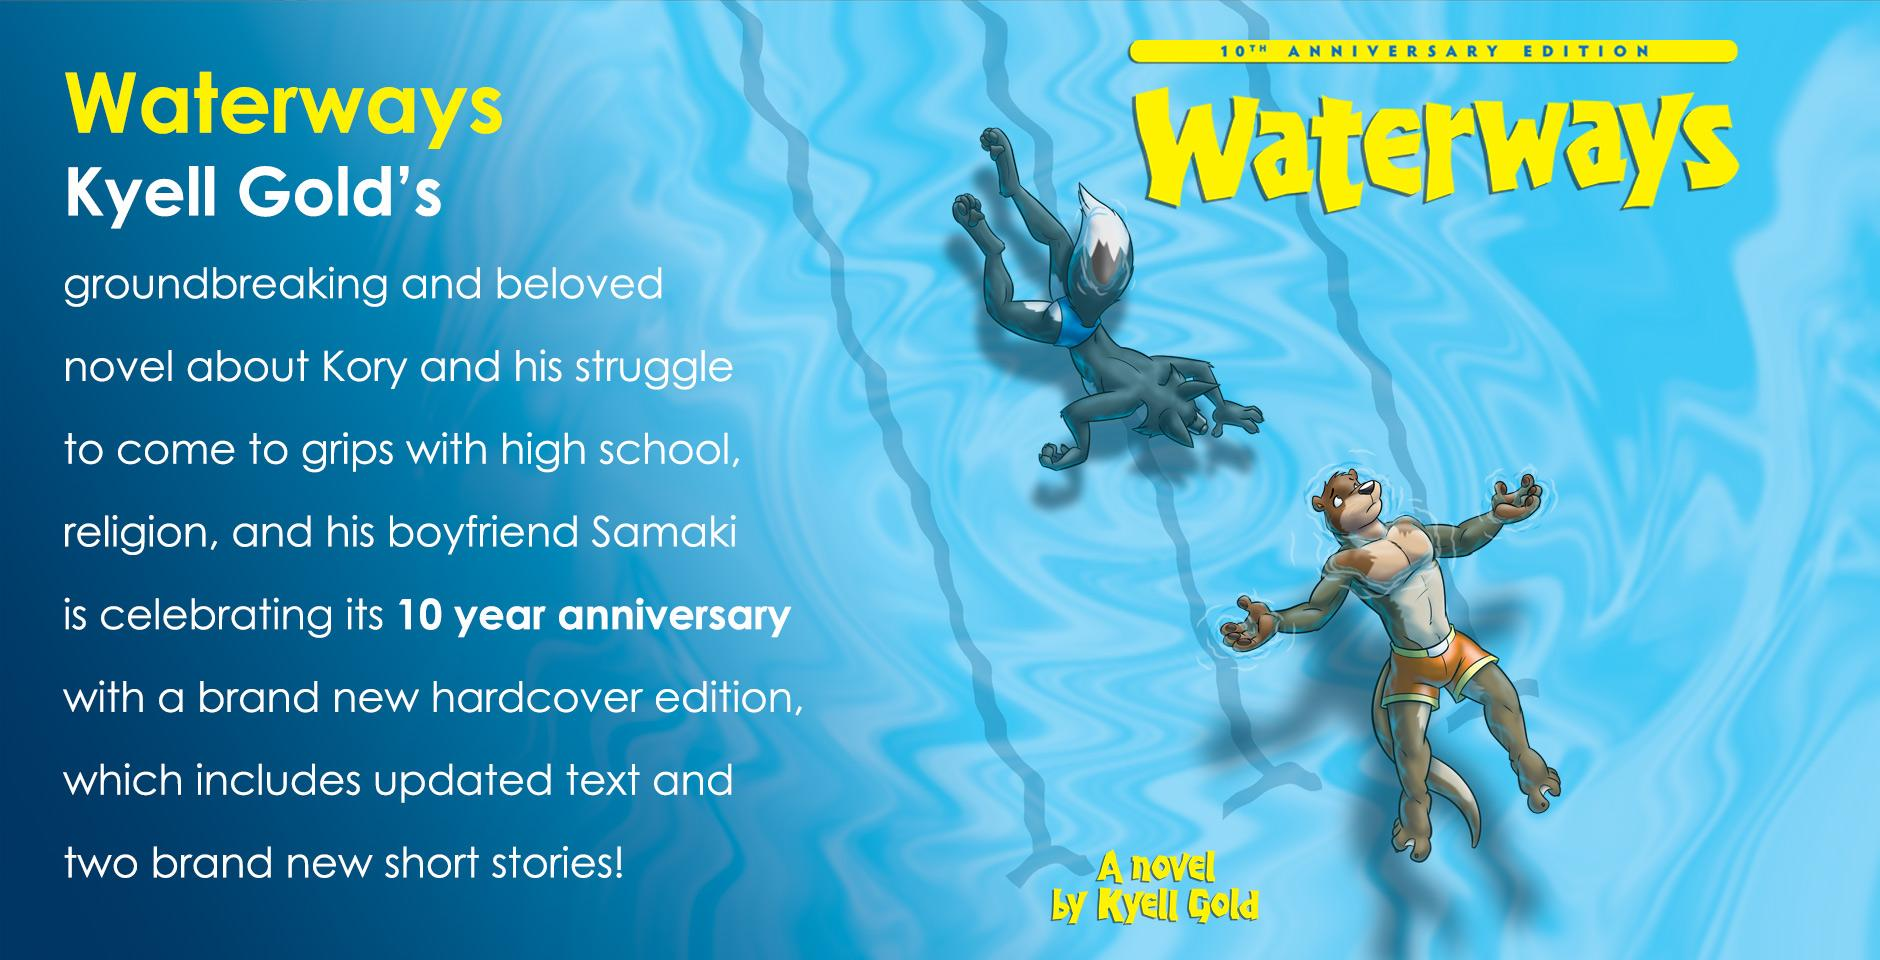 Kyell Gold's Waterways, new tenth anniversary edition